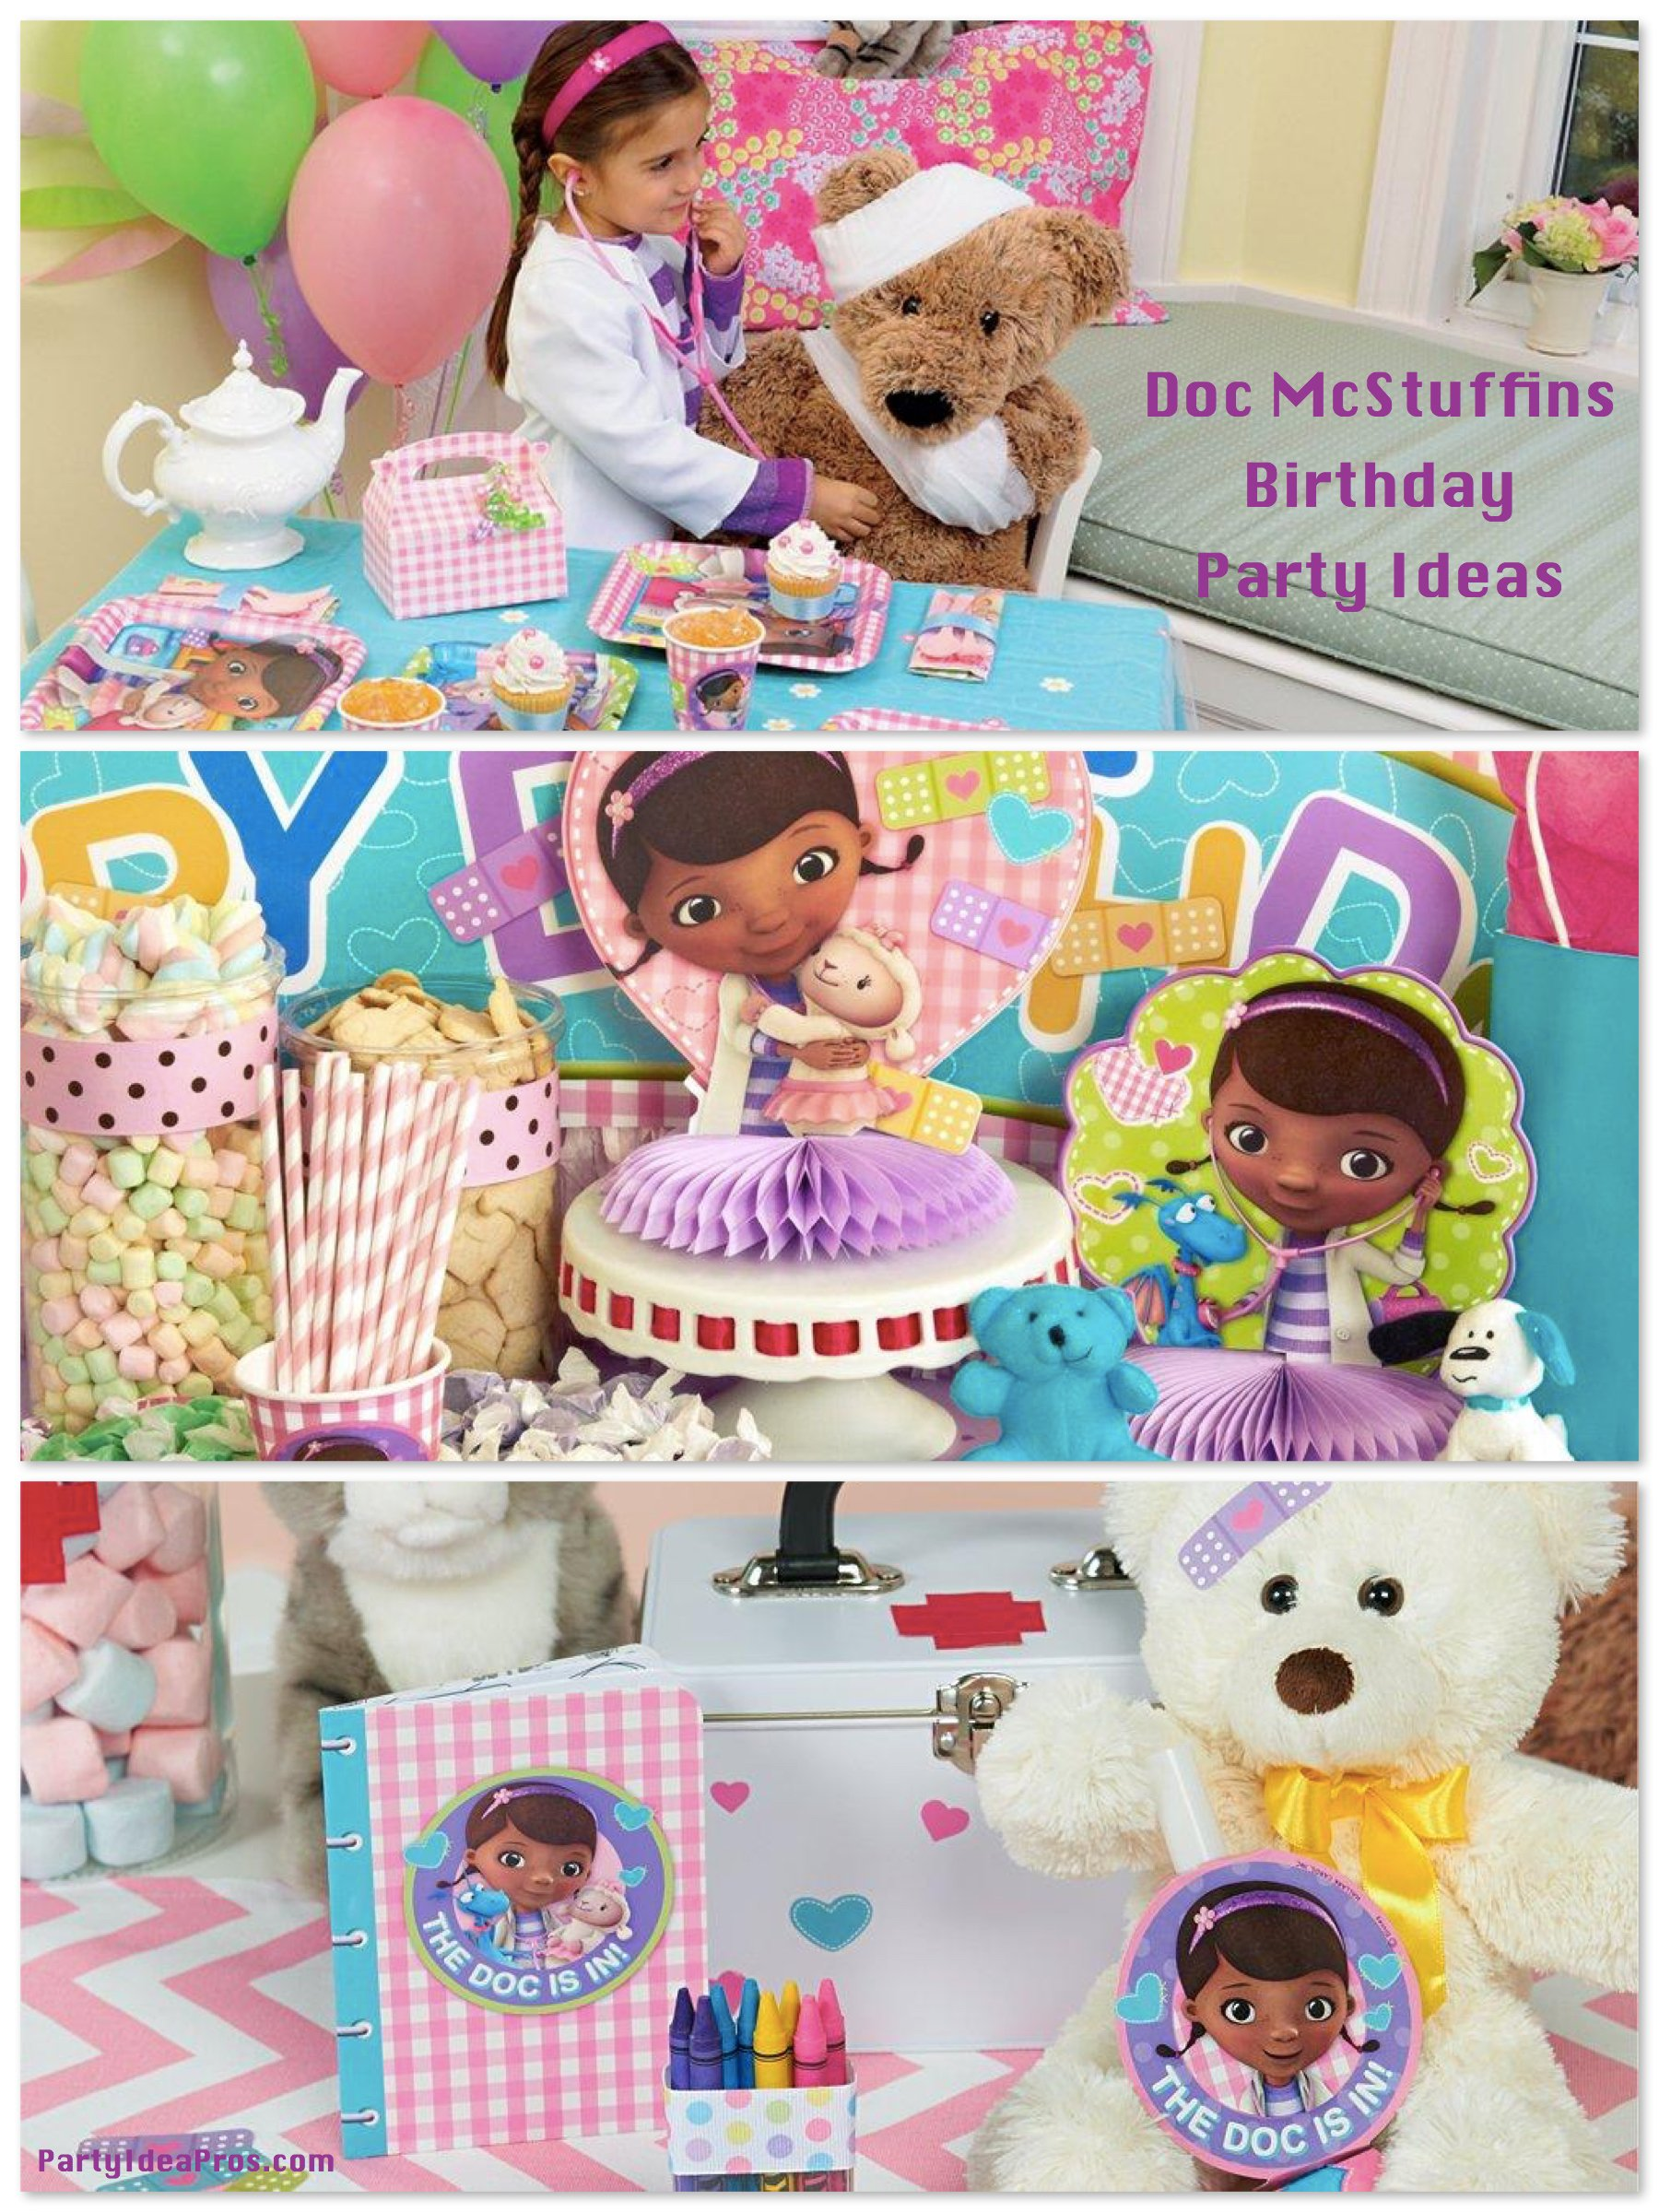 Doc Mcstuffins Birthday Party Planning Ideas Supplies Partyideapros Com